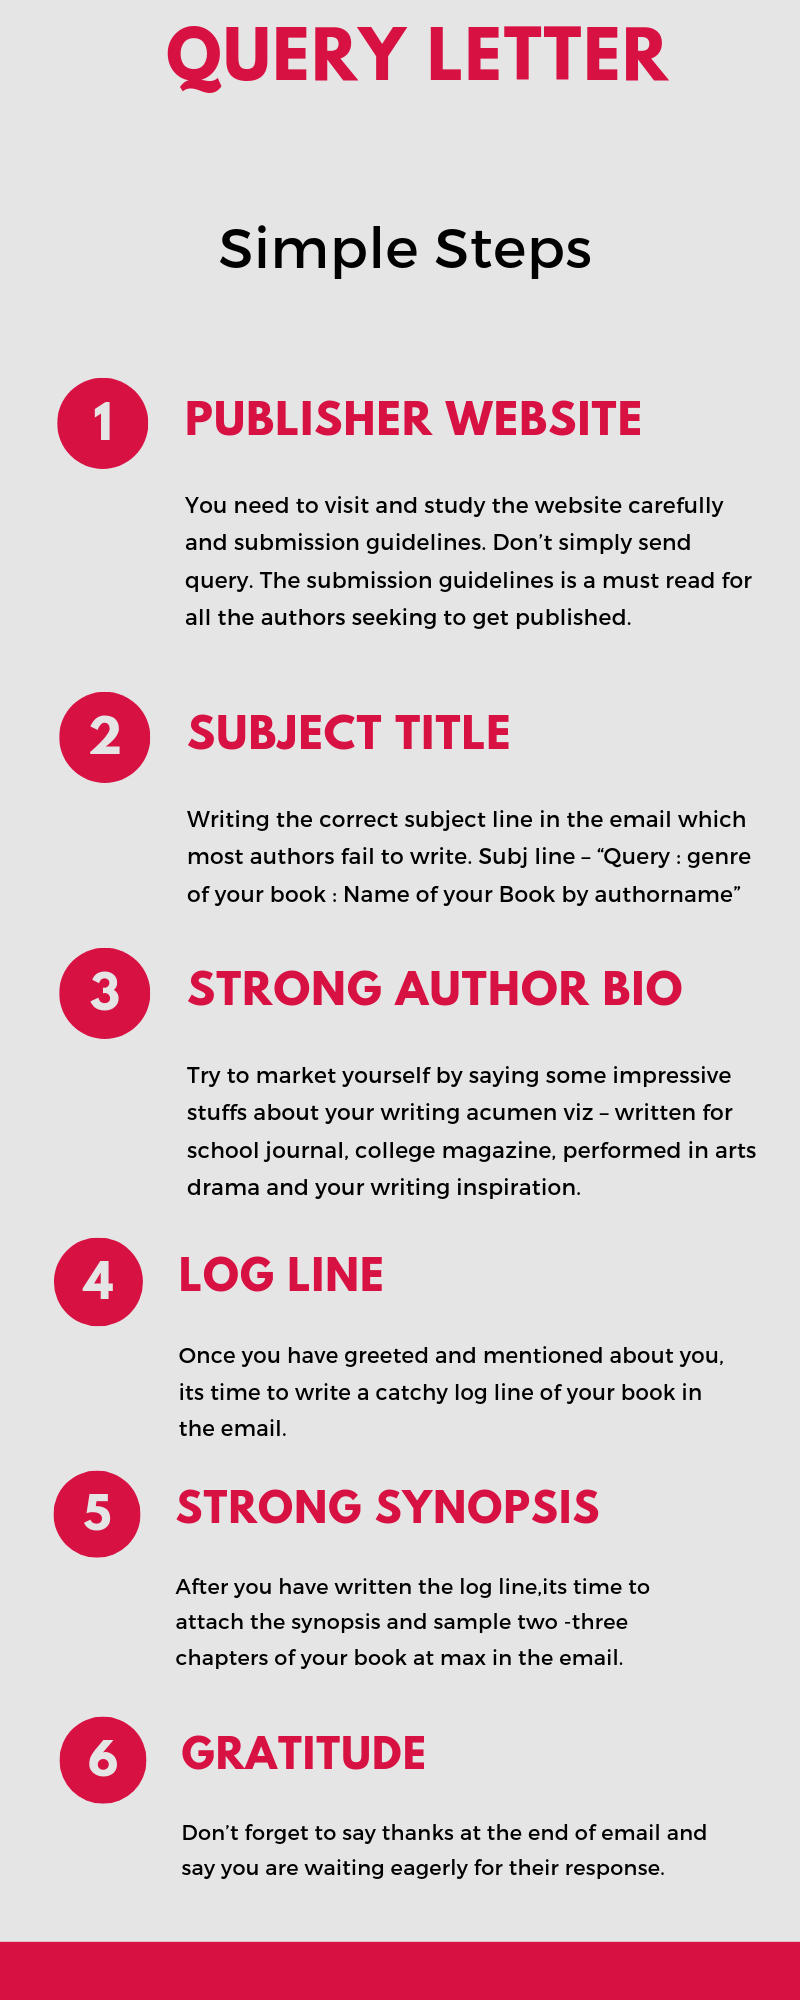 How to write a good query letter in 7 easy steps Book